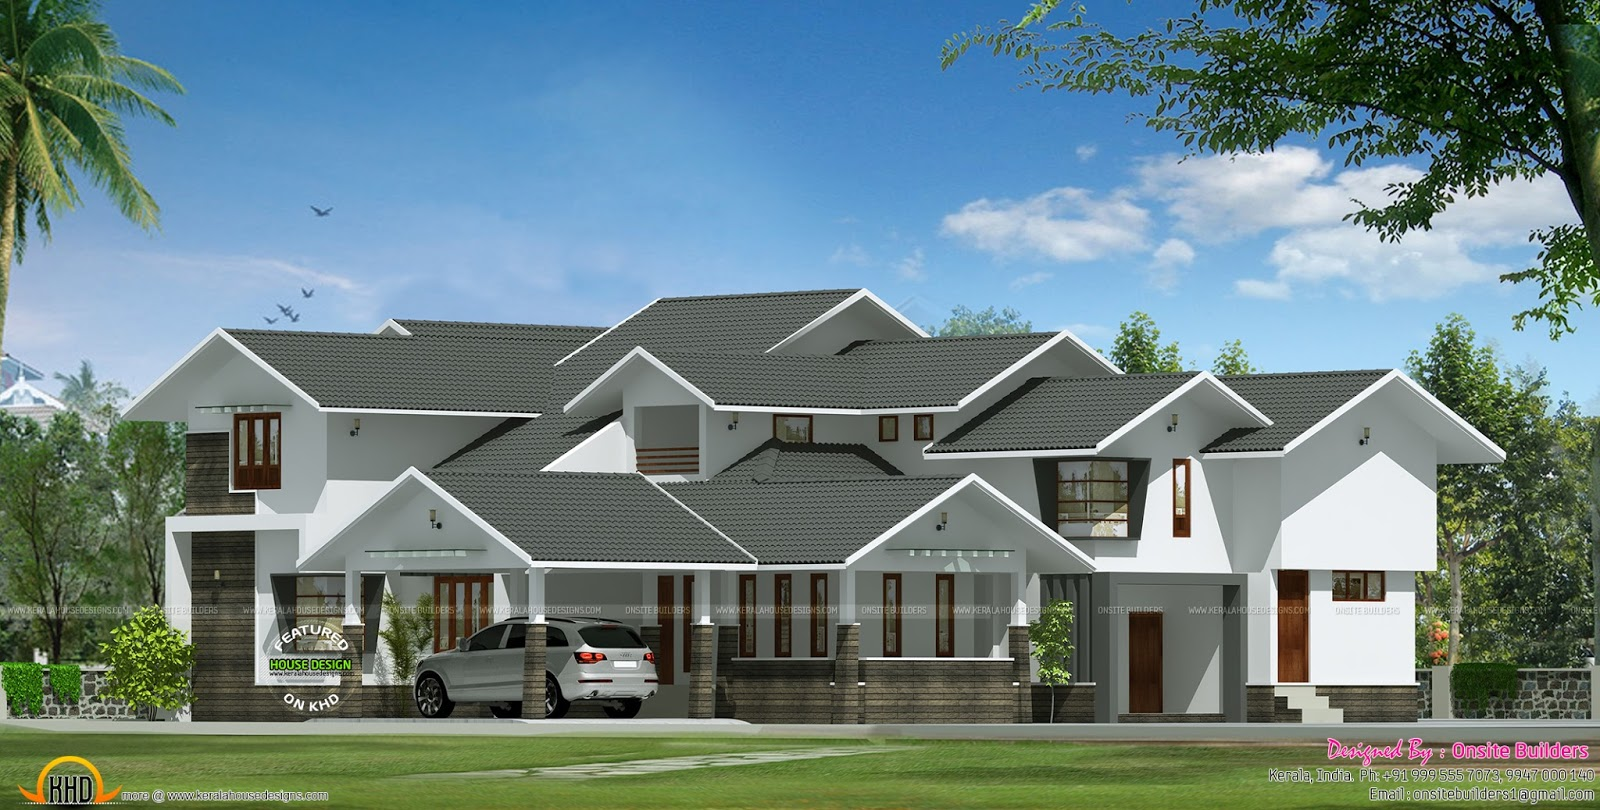 House design hilly area - Luxury Home Design House Facilities